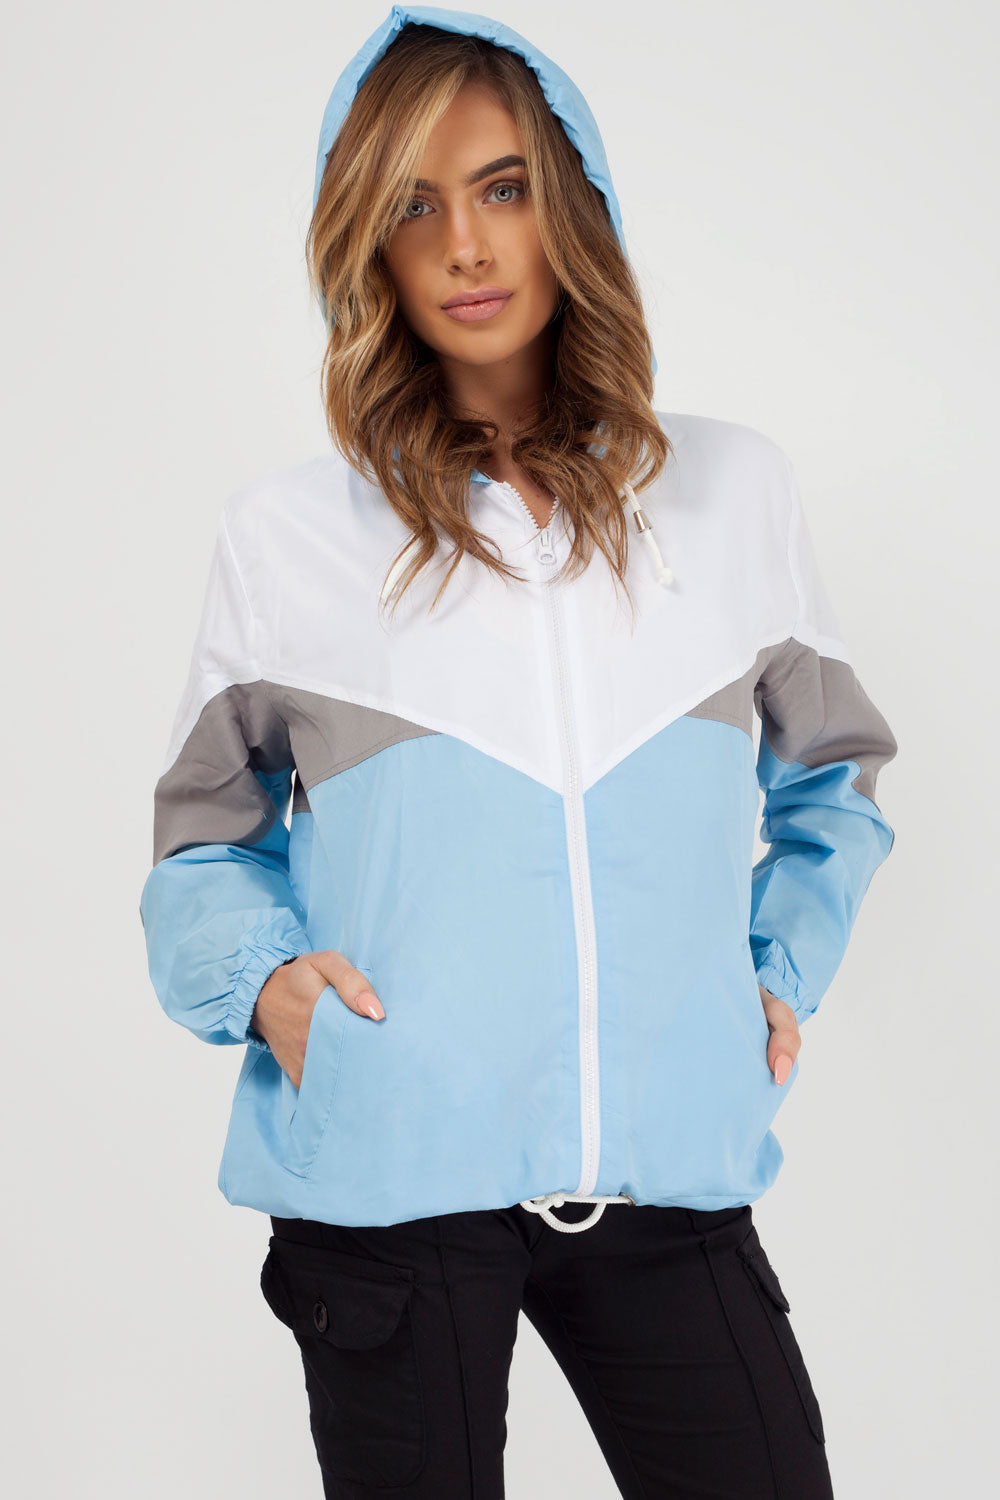 windbreaker blue jacket women styledup fashion